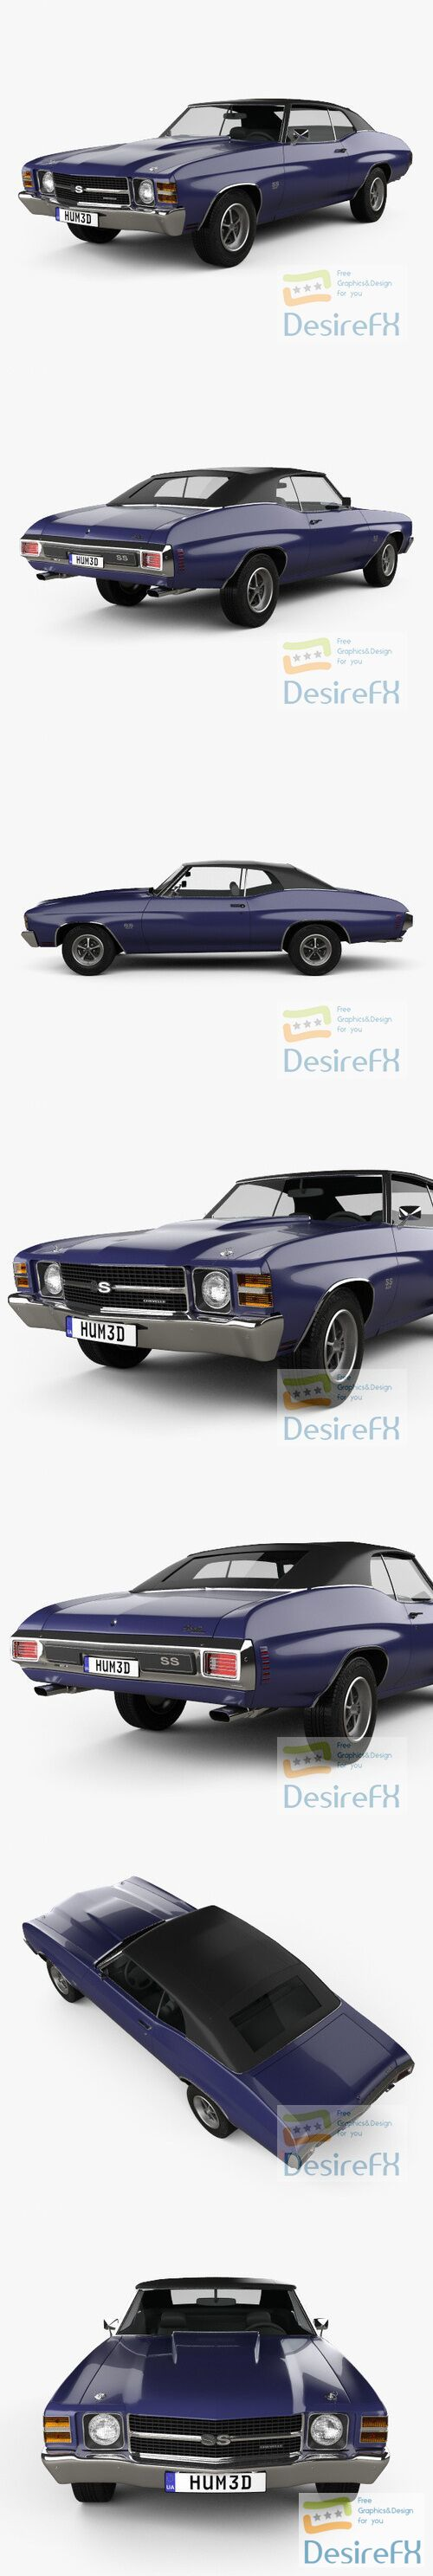 Chevrolet Chevelle SS 454 LS5 convertible 1971 3D Model